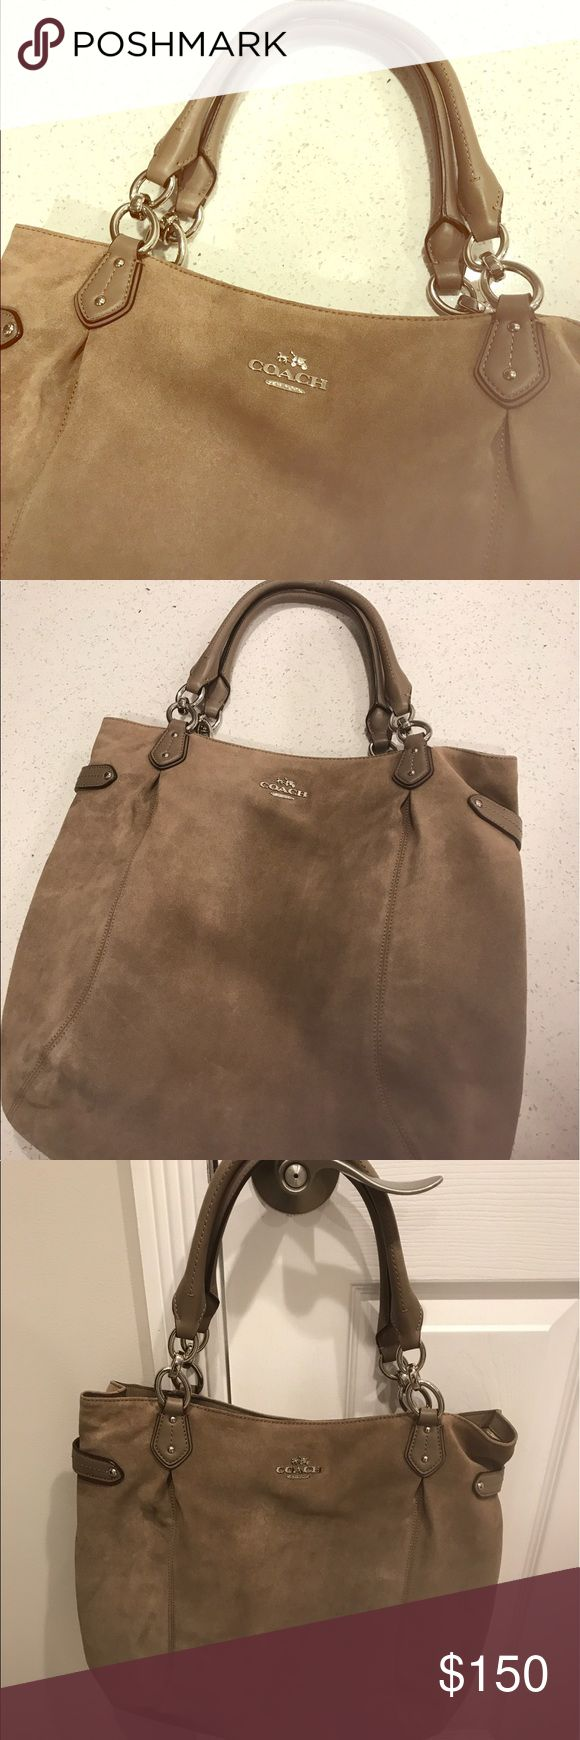 COACH large suede tote / shoulder bag- almost new! COACH shoulder bag/ tote in suede, taupe color. In great condition. Gently used for fall season. Dry cleaned and ready to be used again. Comes with original tag and care card. Great price!! Coach Bags Shoulder Bags